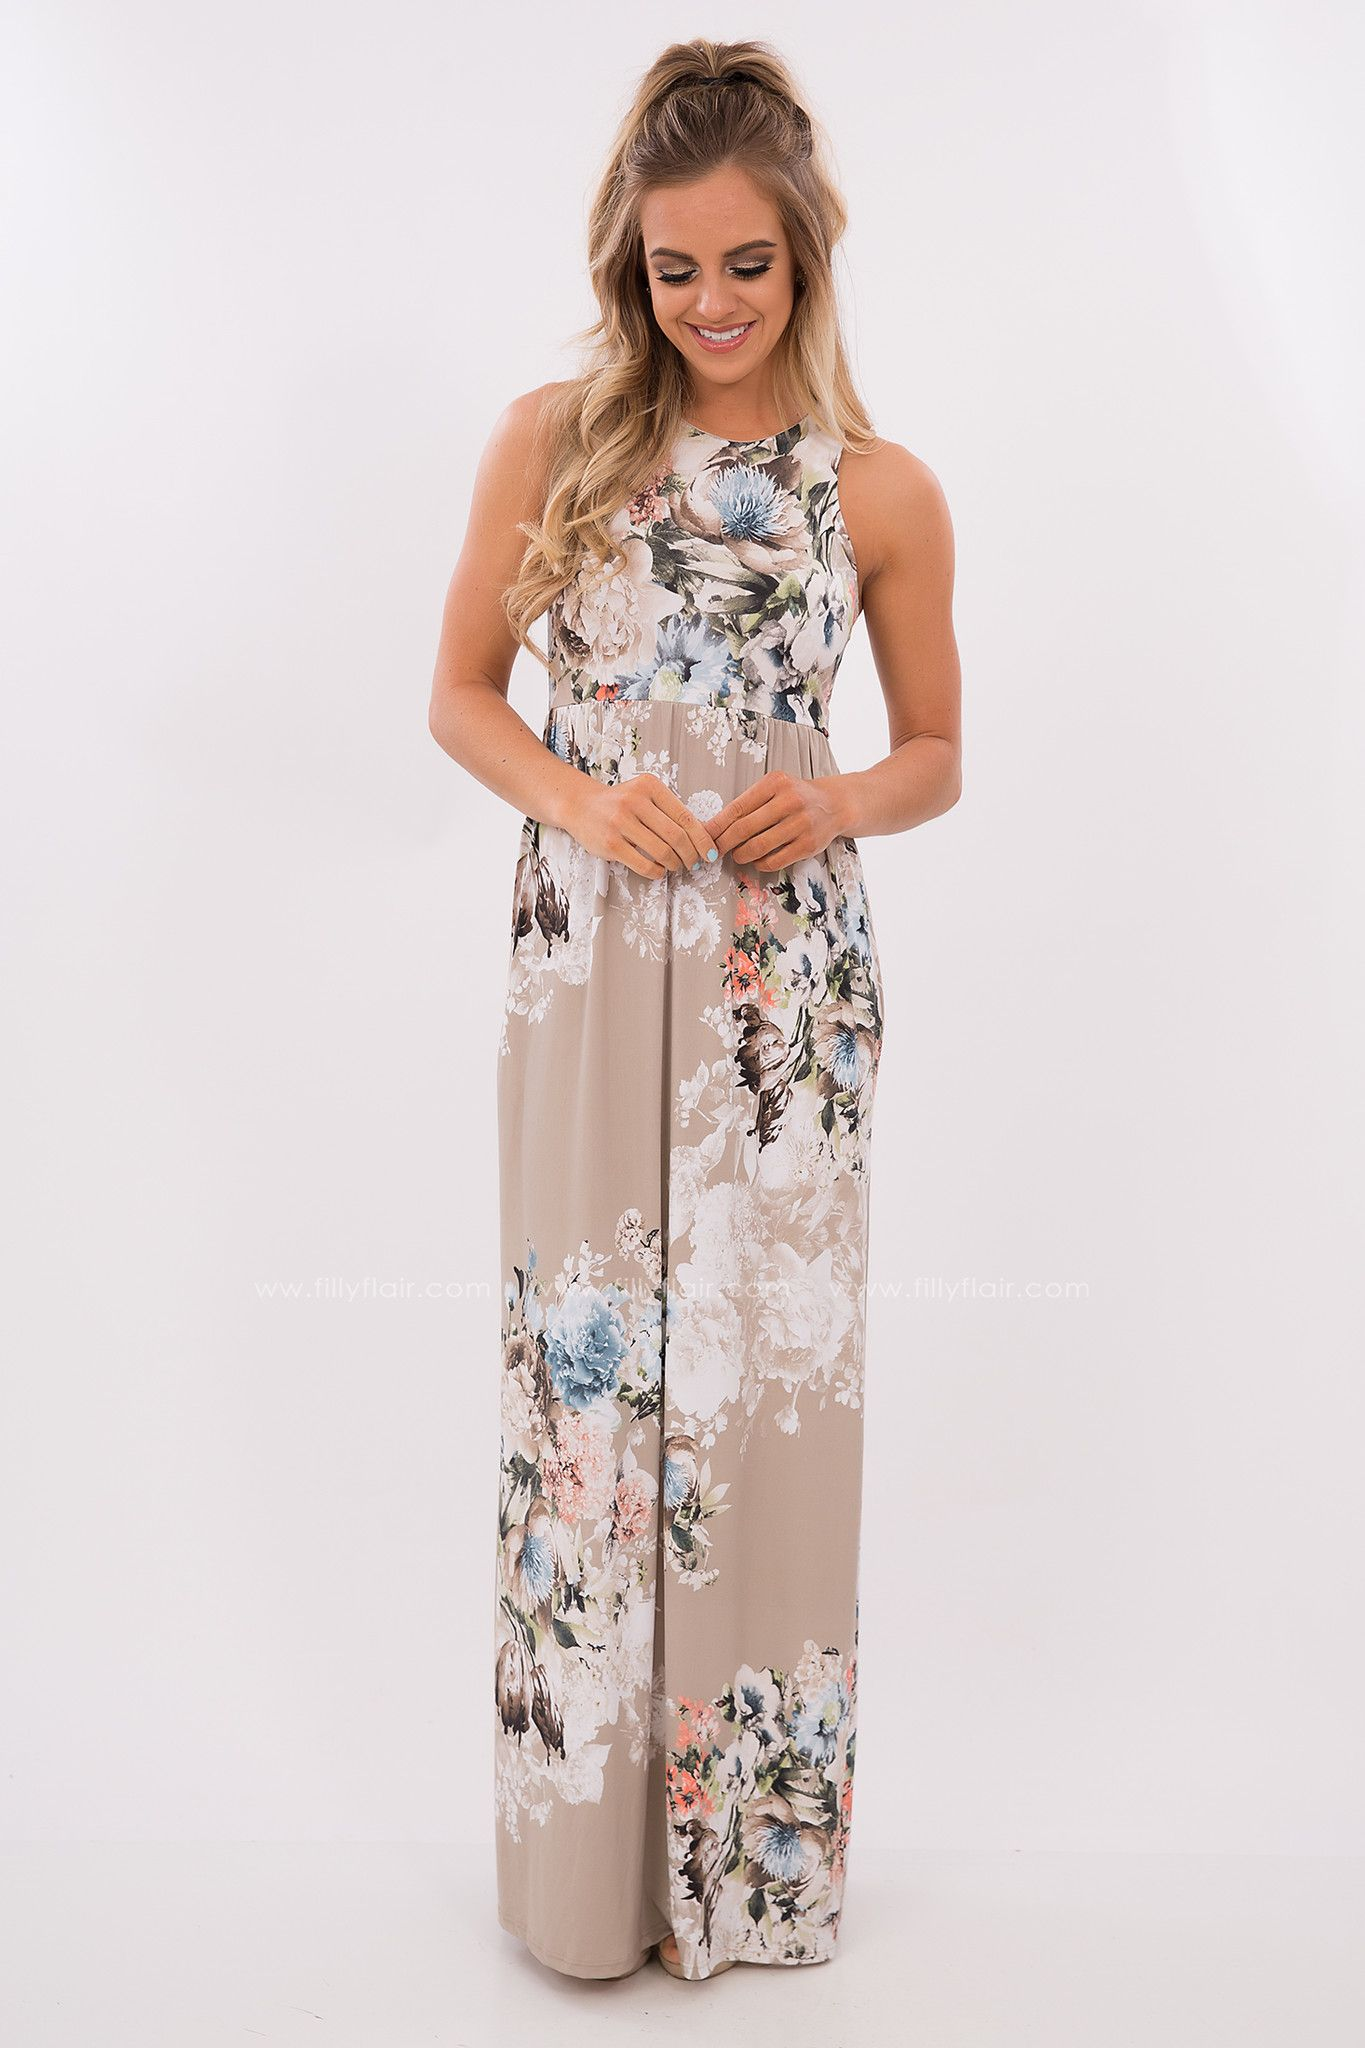 Preorder easy street floral printed maxi dress in taupe s t y l e